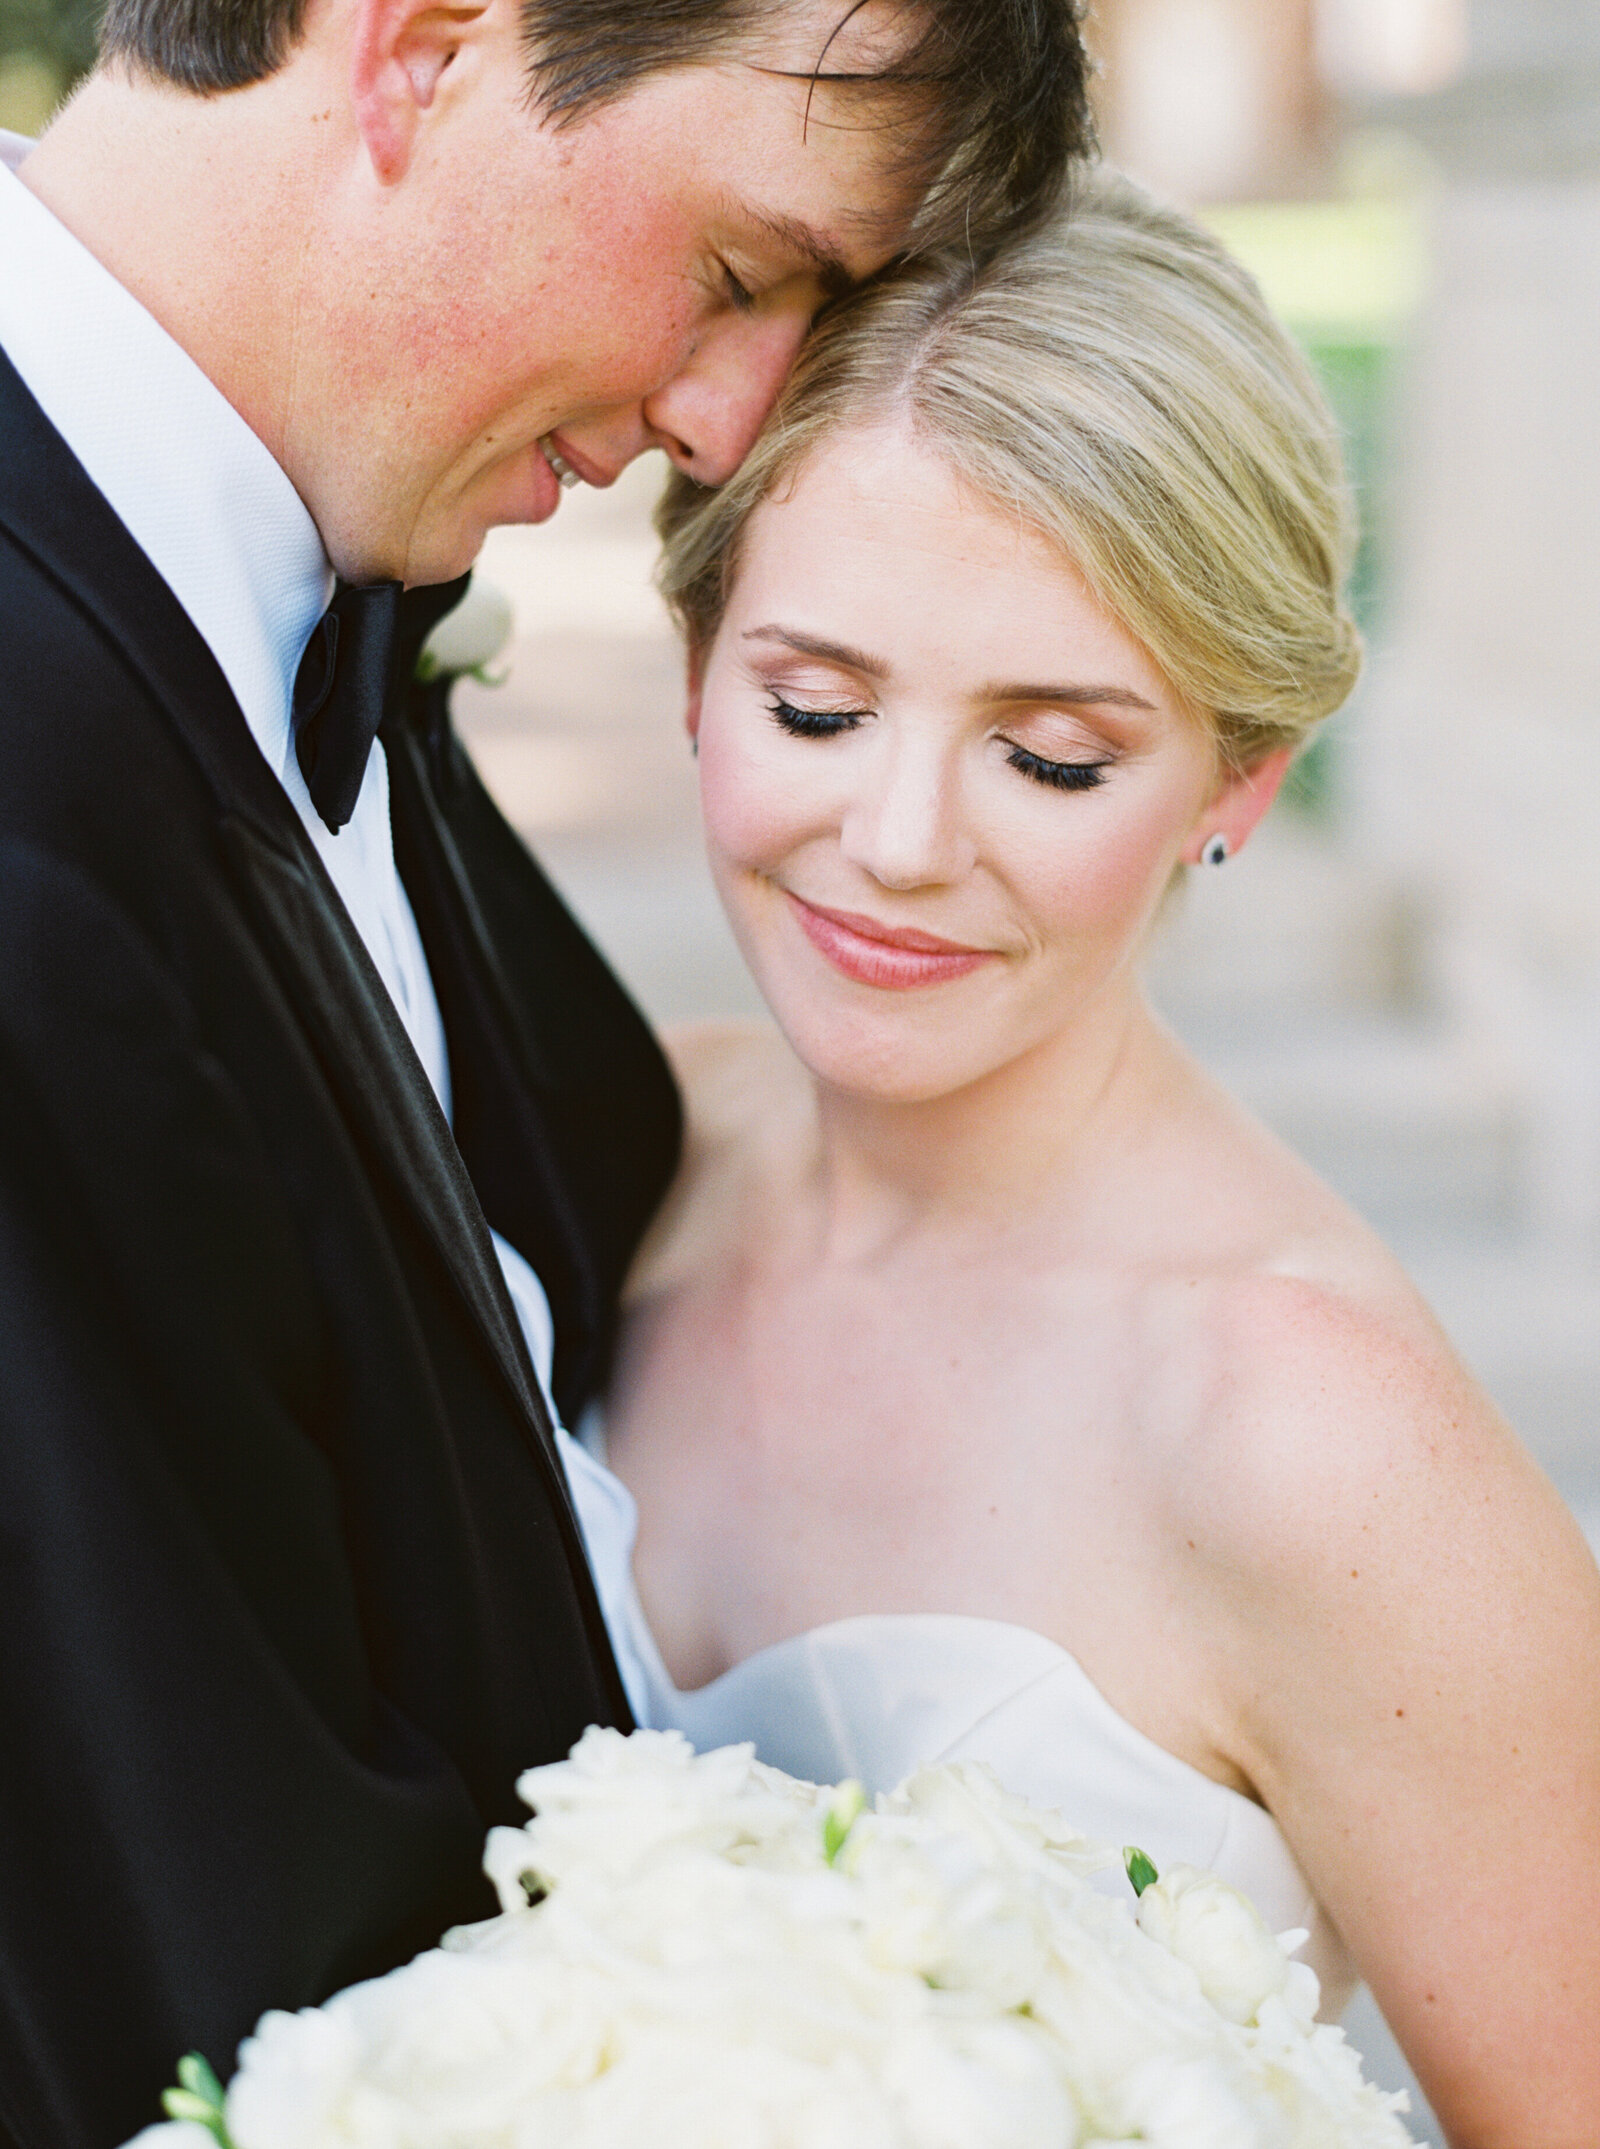 joshua aull photography dallas wedding photographer_0071